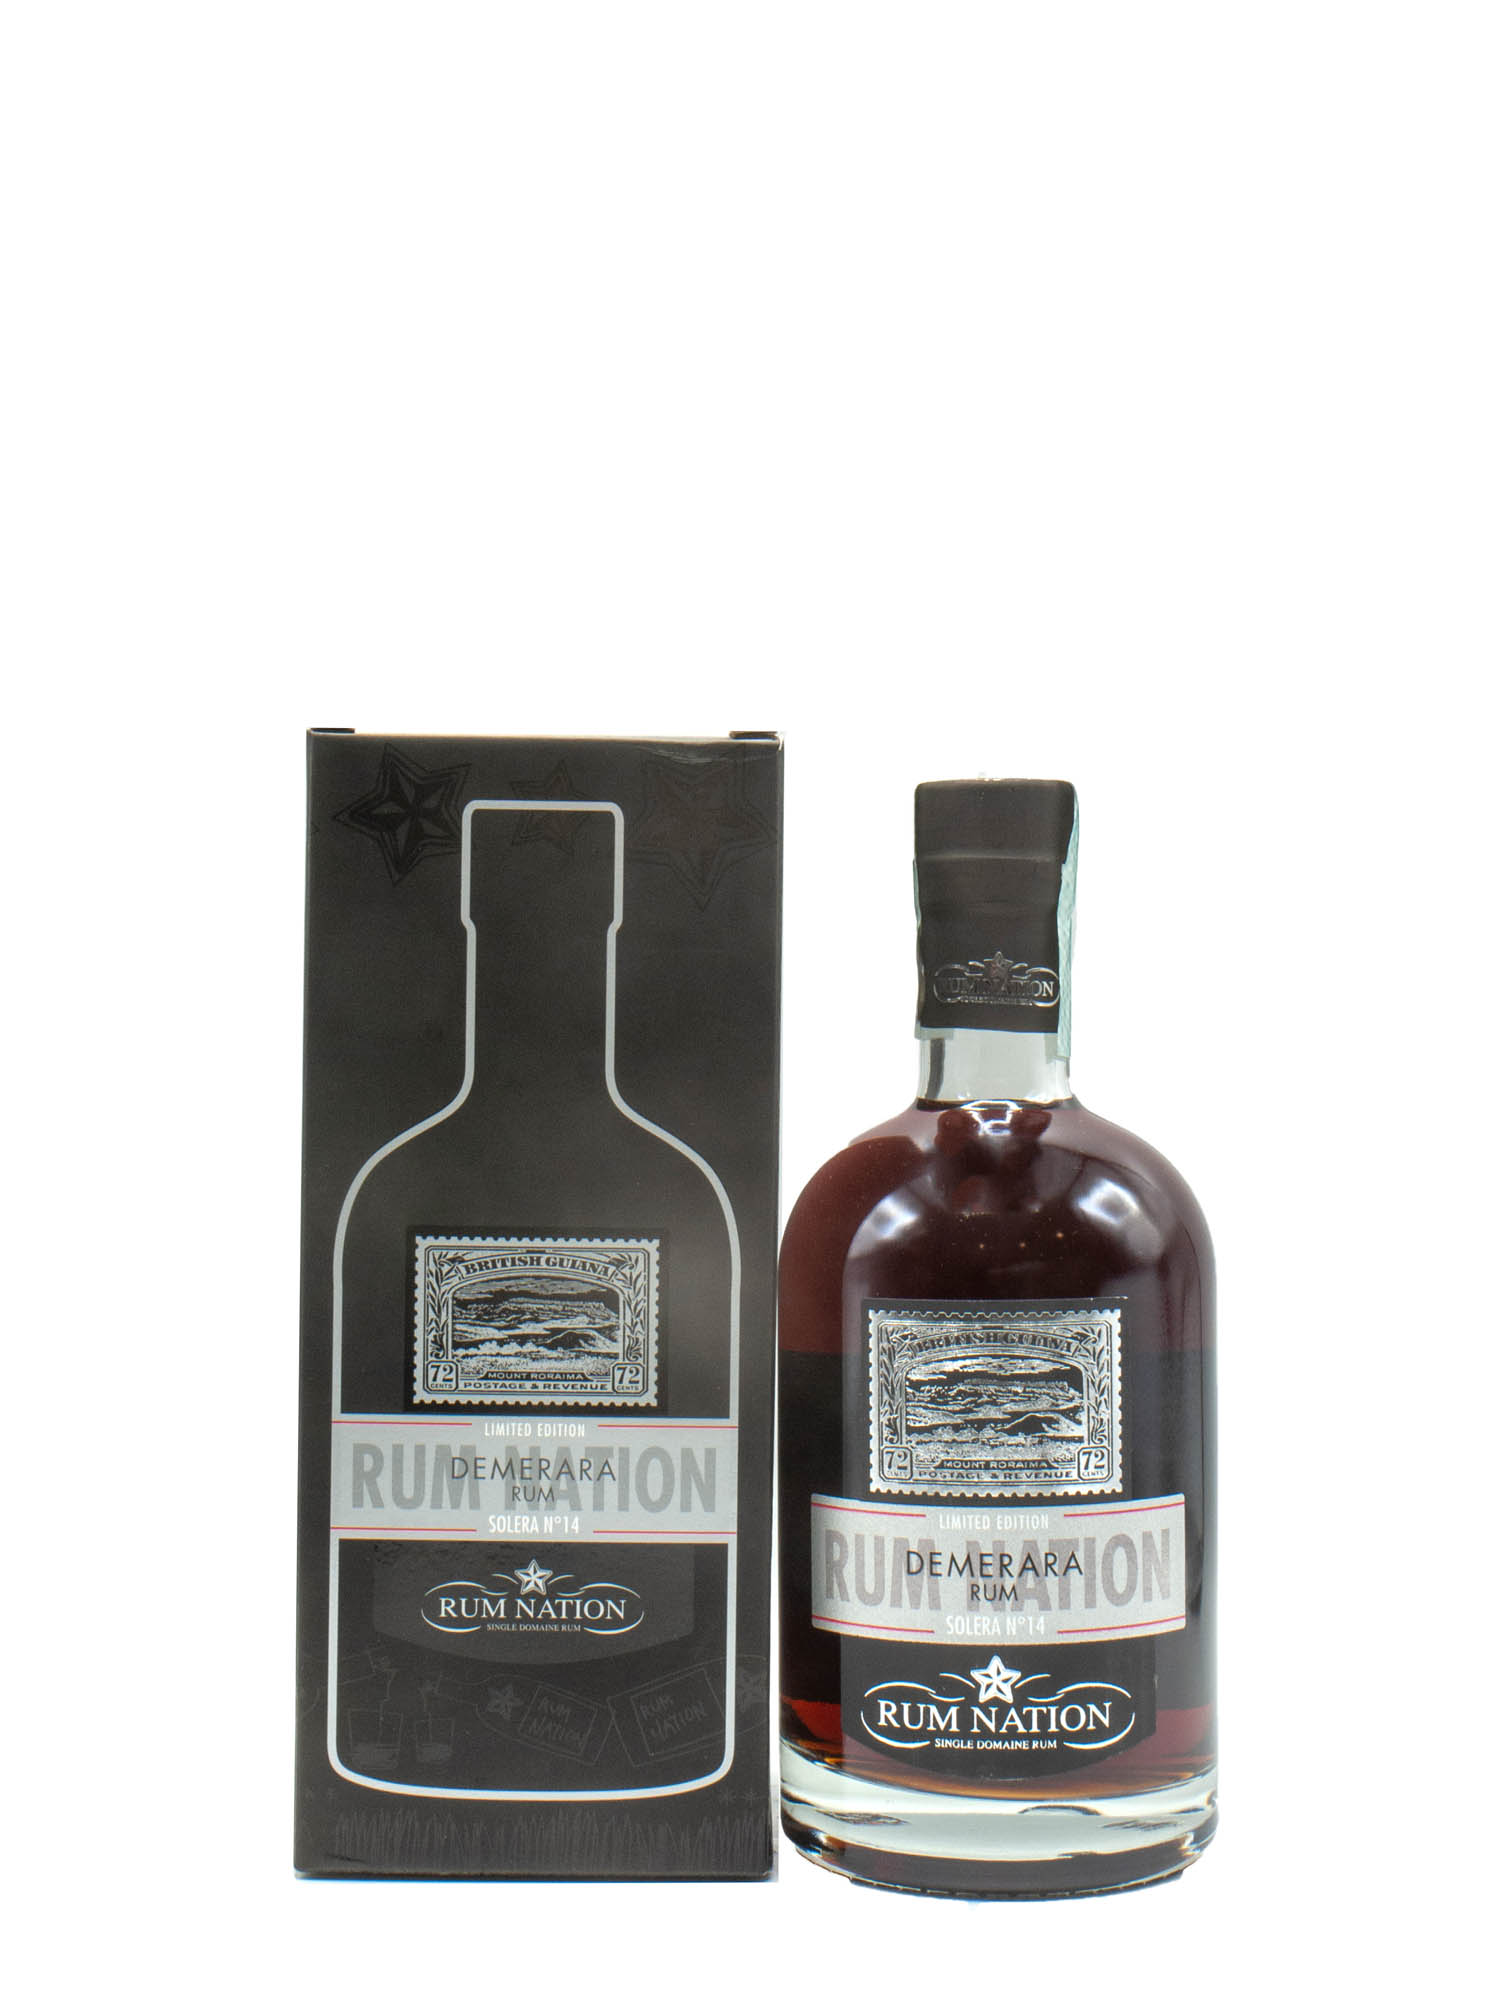 RUM NATION DEMERARA SOLERA # 14